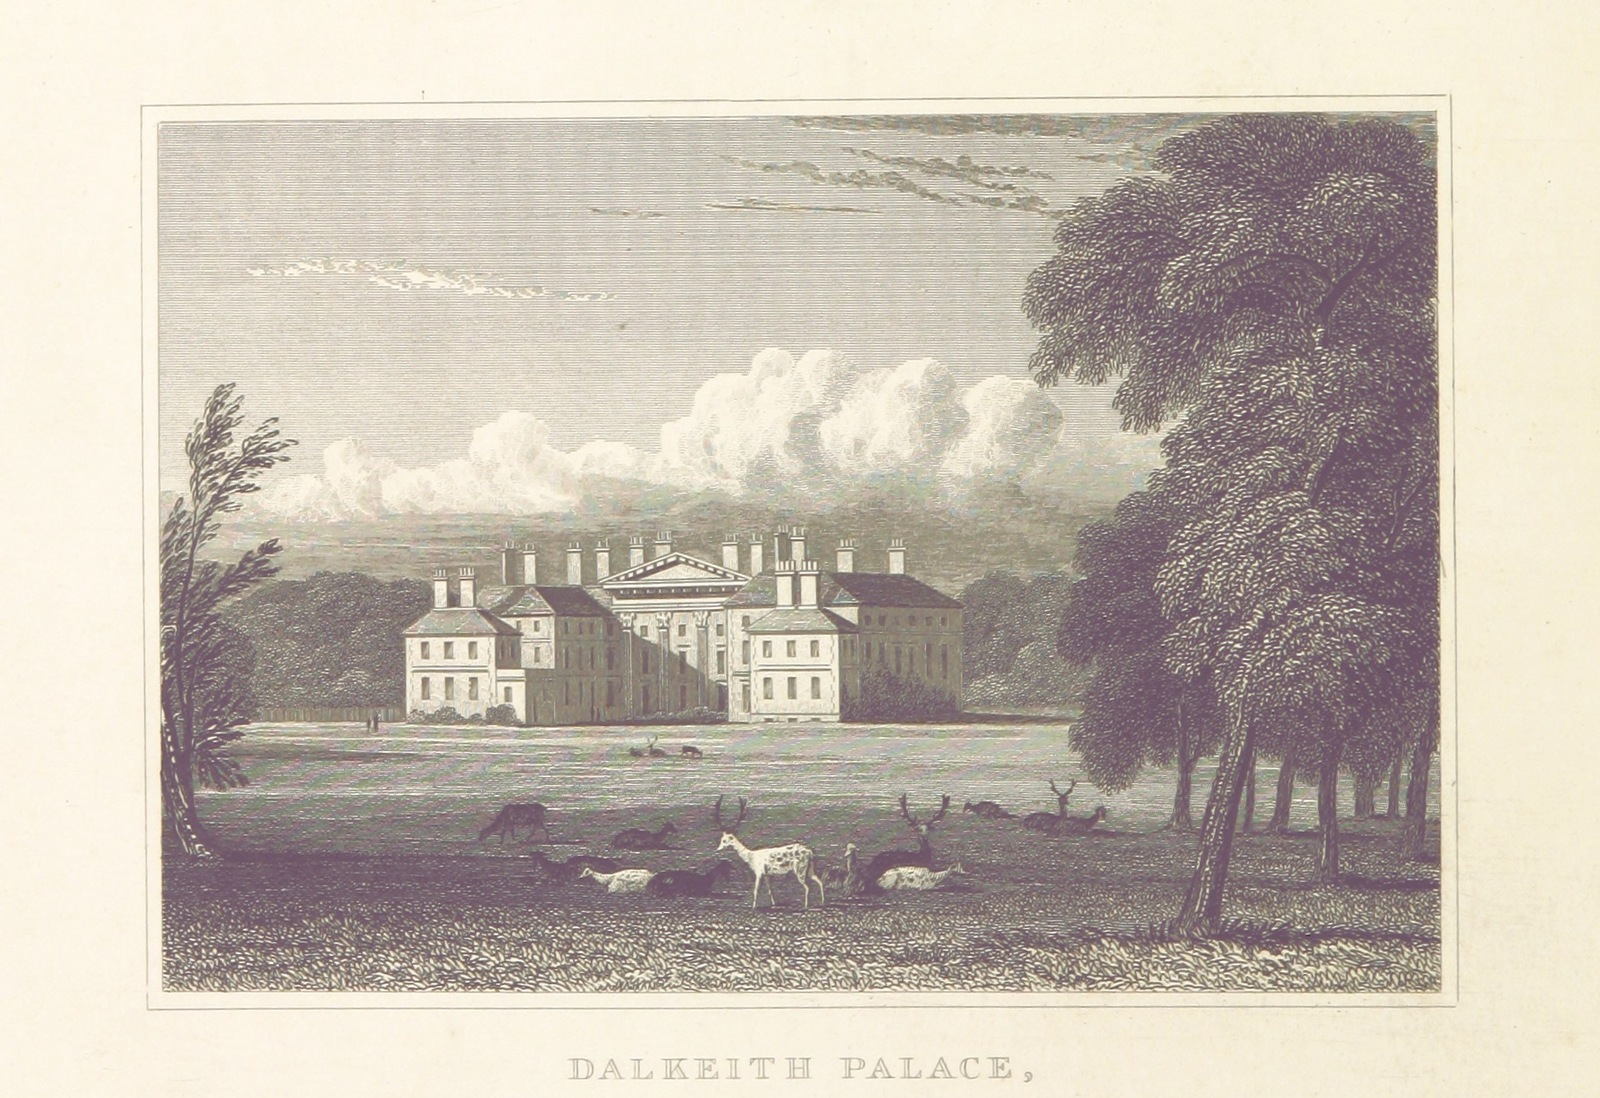 """former seat of the Duke of Buccleuch from """"Modern Athens, displayed in a series of views; or, Edinburgh in the nineteenth century; exhibiting the whole of the new buildings, modern improvements, antiquities, & picturesque scenery of the Scottish metropolis & its environs, from original drawings by Mr. T. H. Shepherd. With historical, topographical & critical illustrations [by John Britton]"""""""